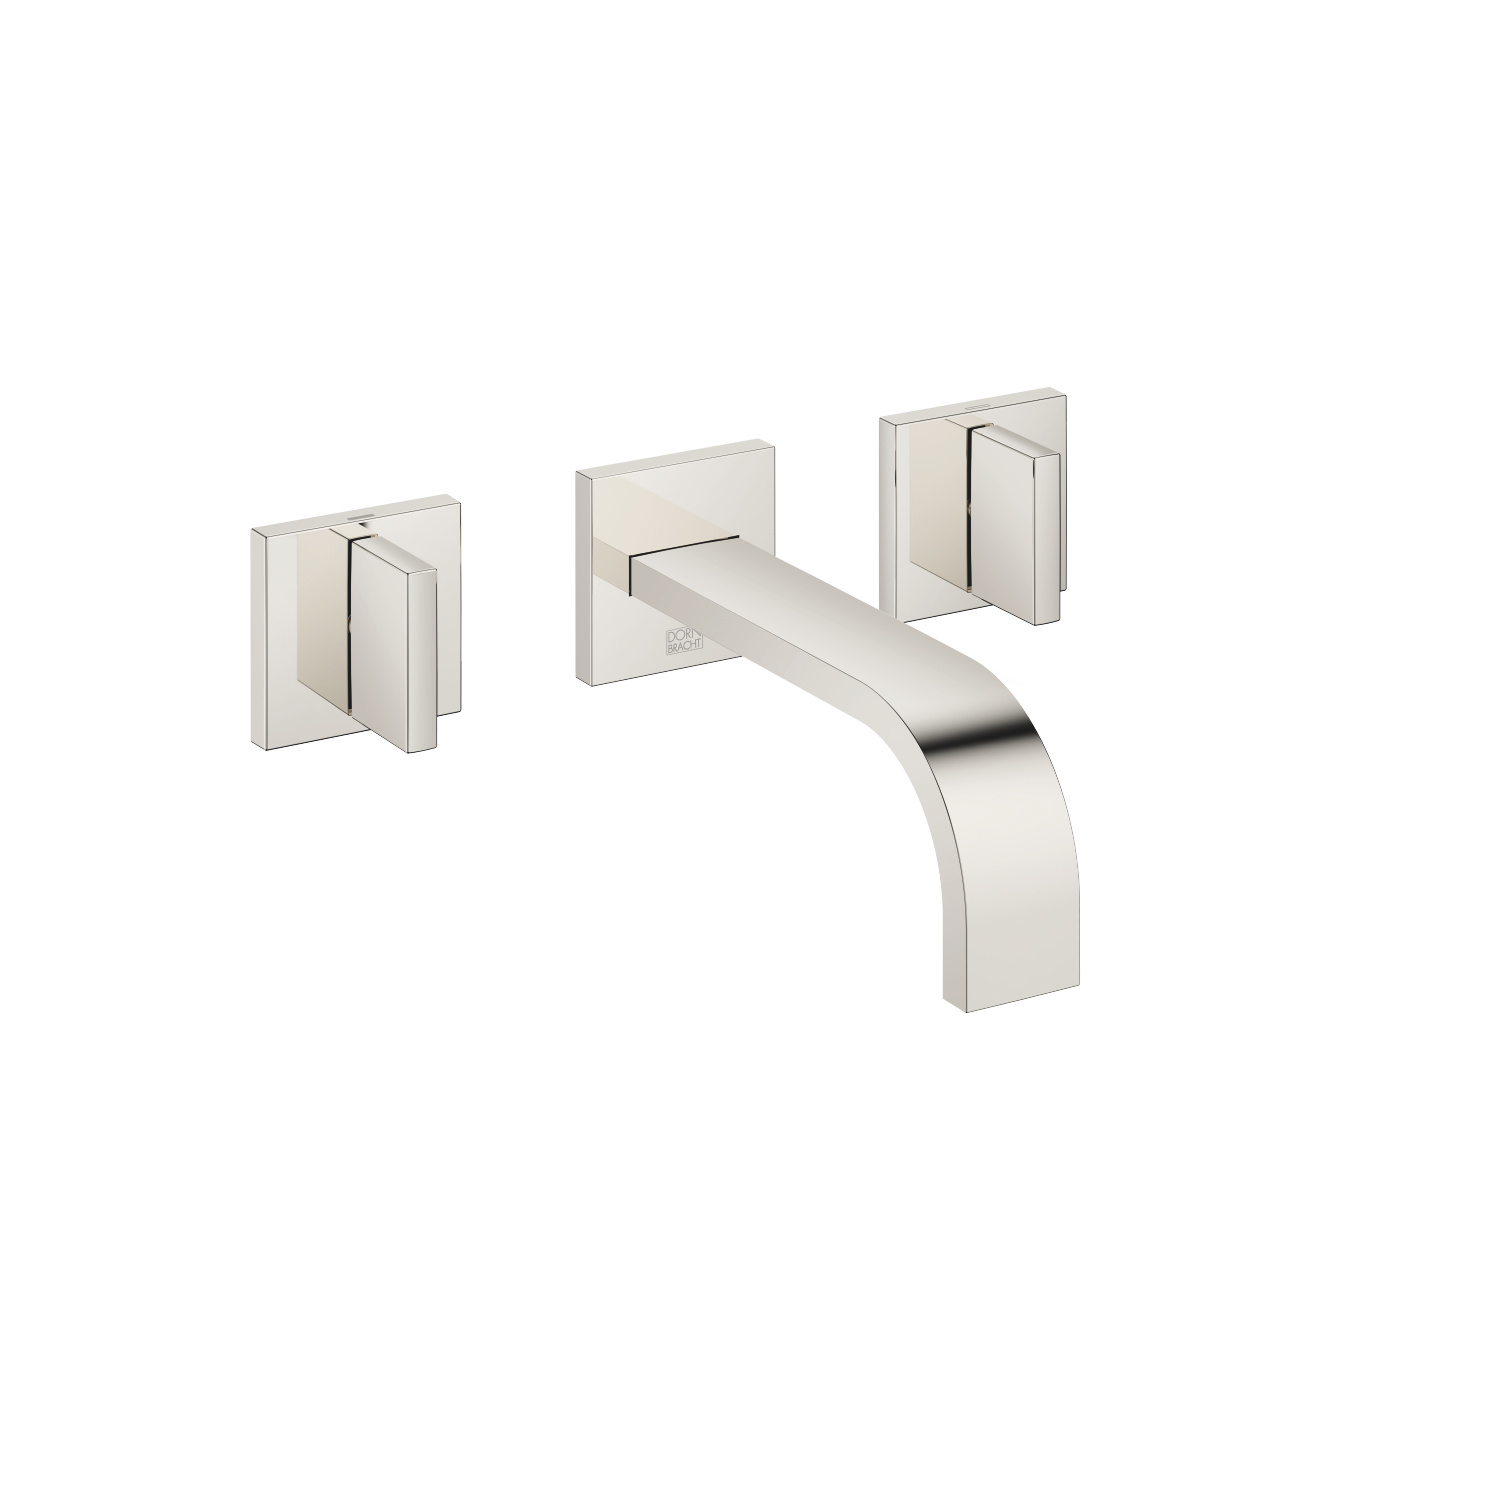 Wall-mounted three-hole lavatory mixer without drain - platinum